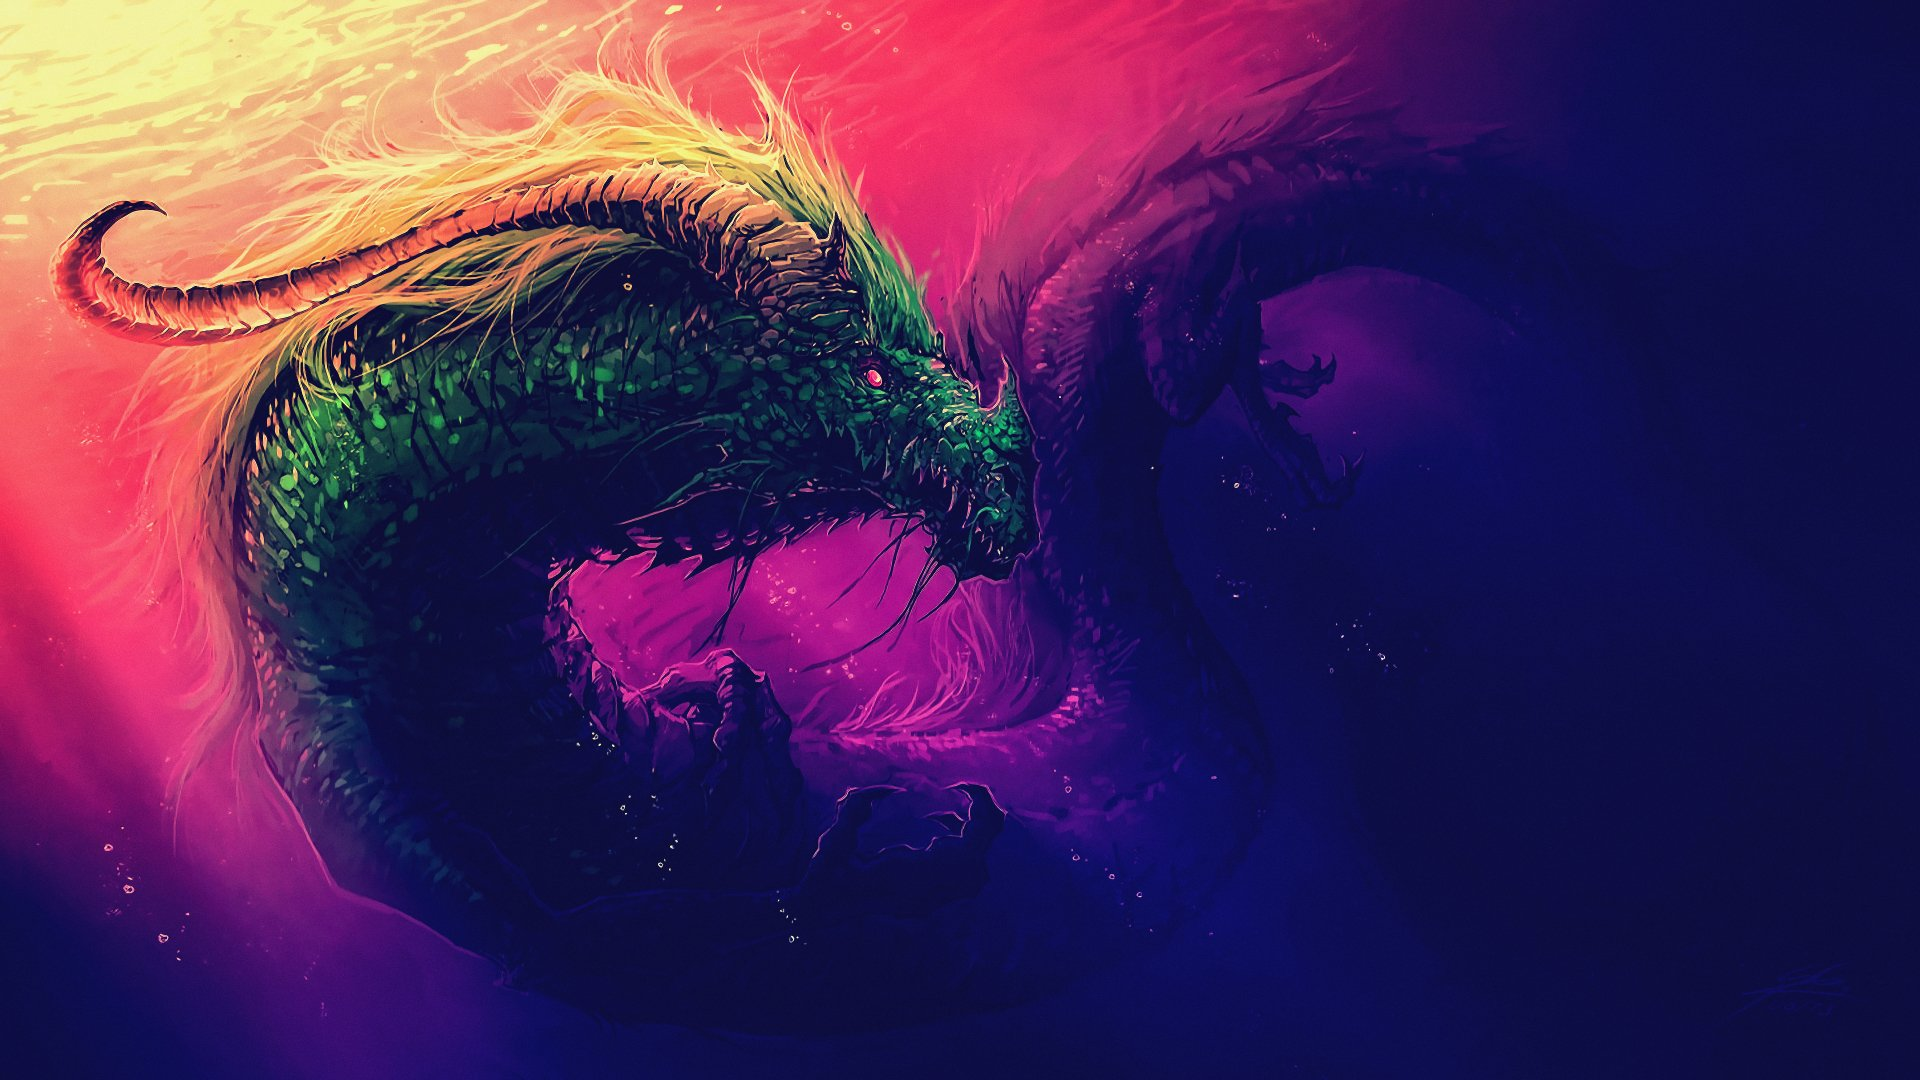 208 4k Ultra Hd Dragon Wallpapers Background Images Wallpaper